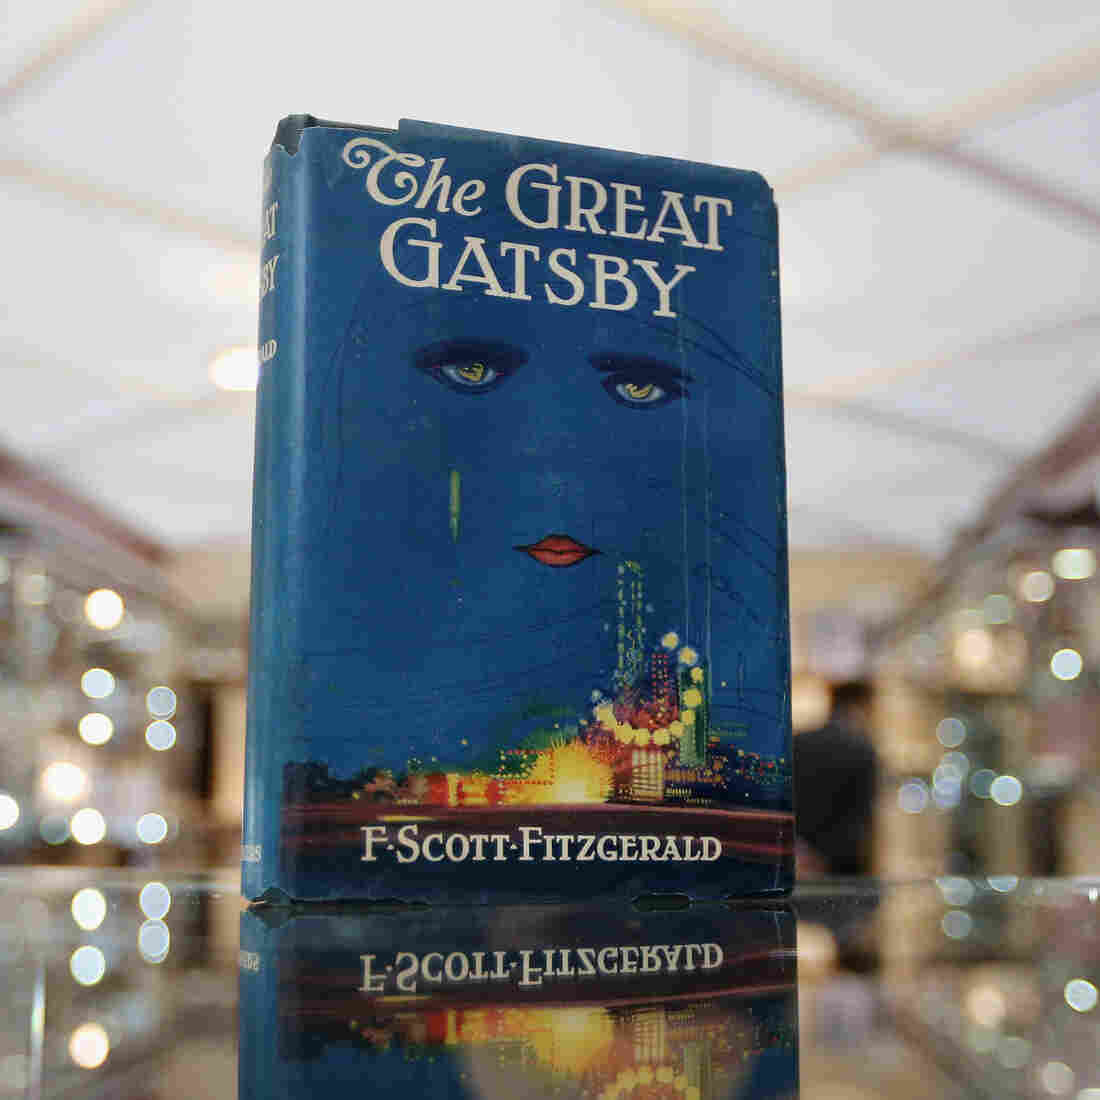 How 'Gatsby' Went From A Moldering Flop To A Great American Novel